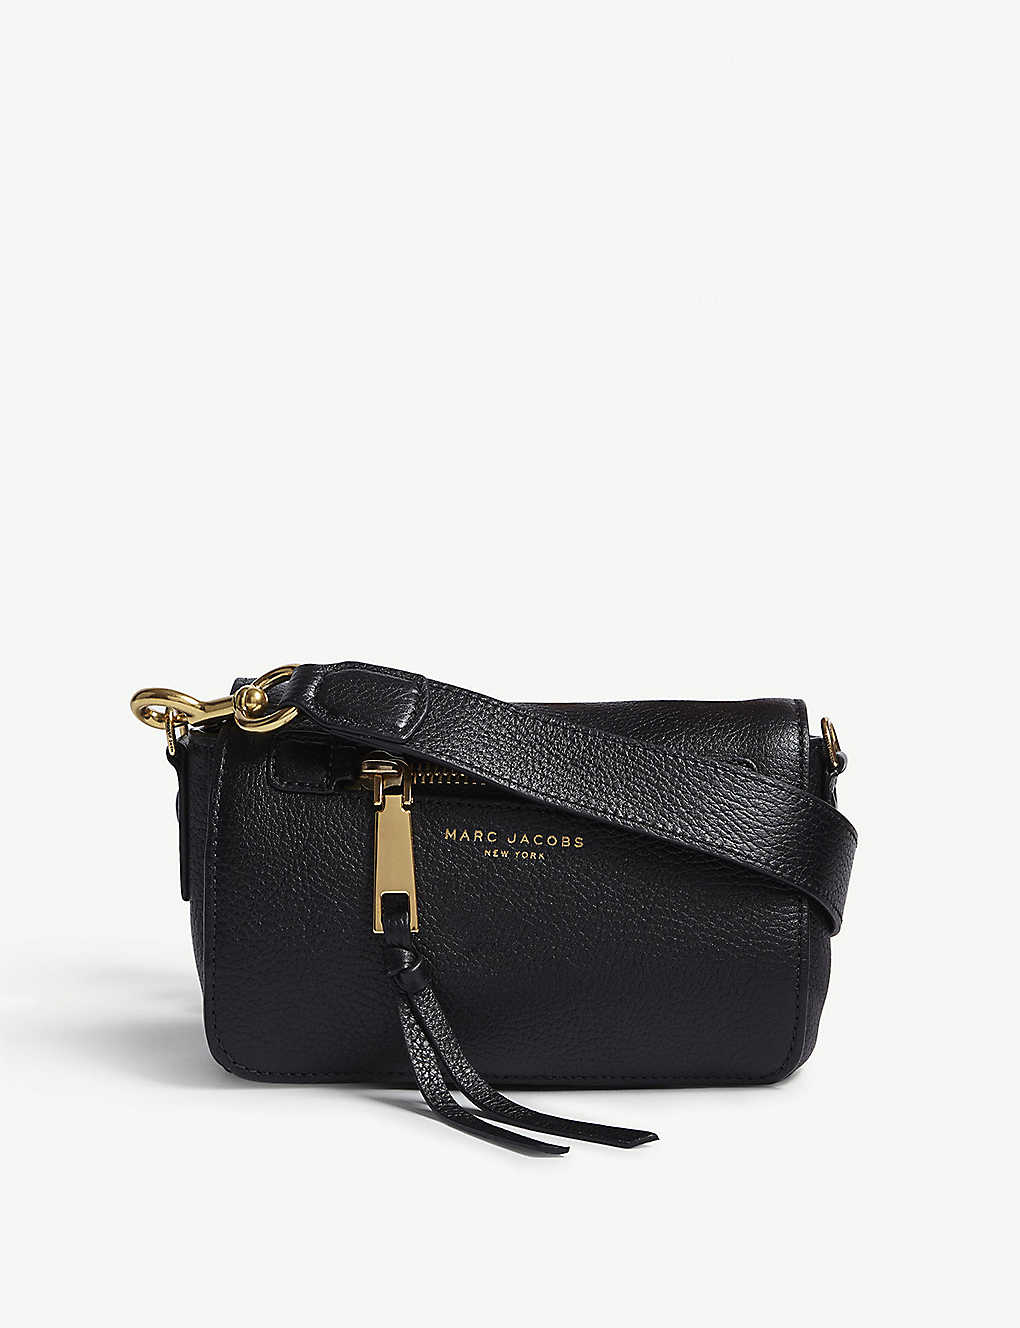 fc03c91f77a6 MARC JACOBS - Recruit leather cross-body bag